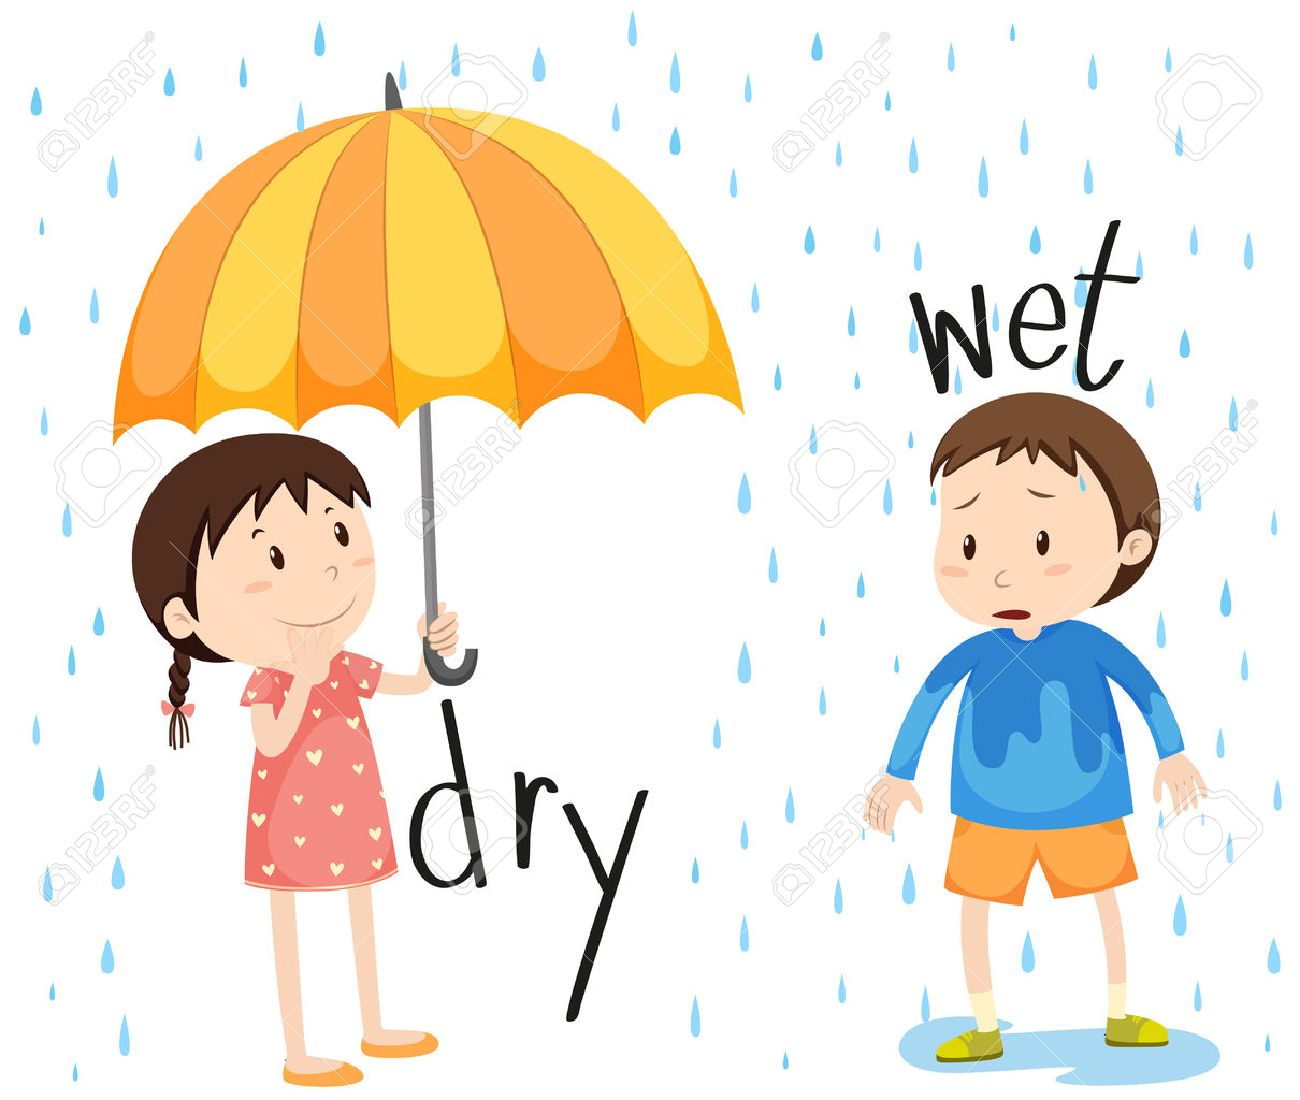 Opposite adjective dry and wet illustration.